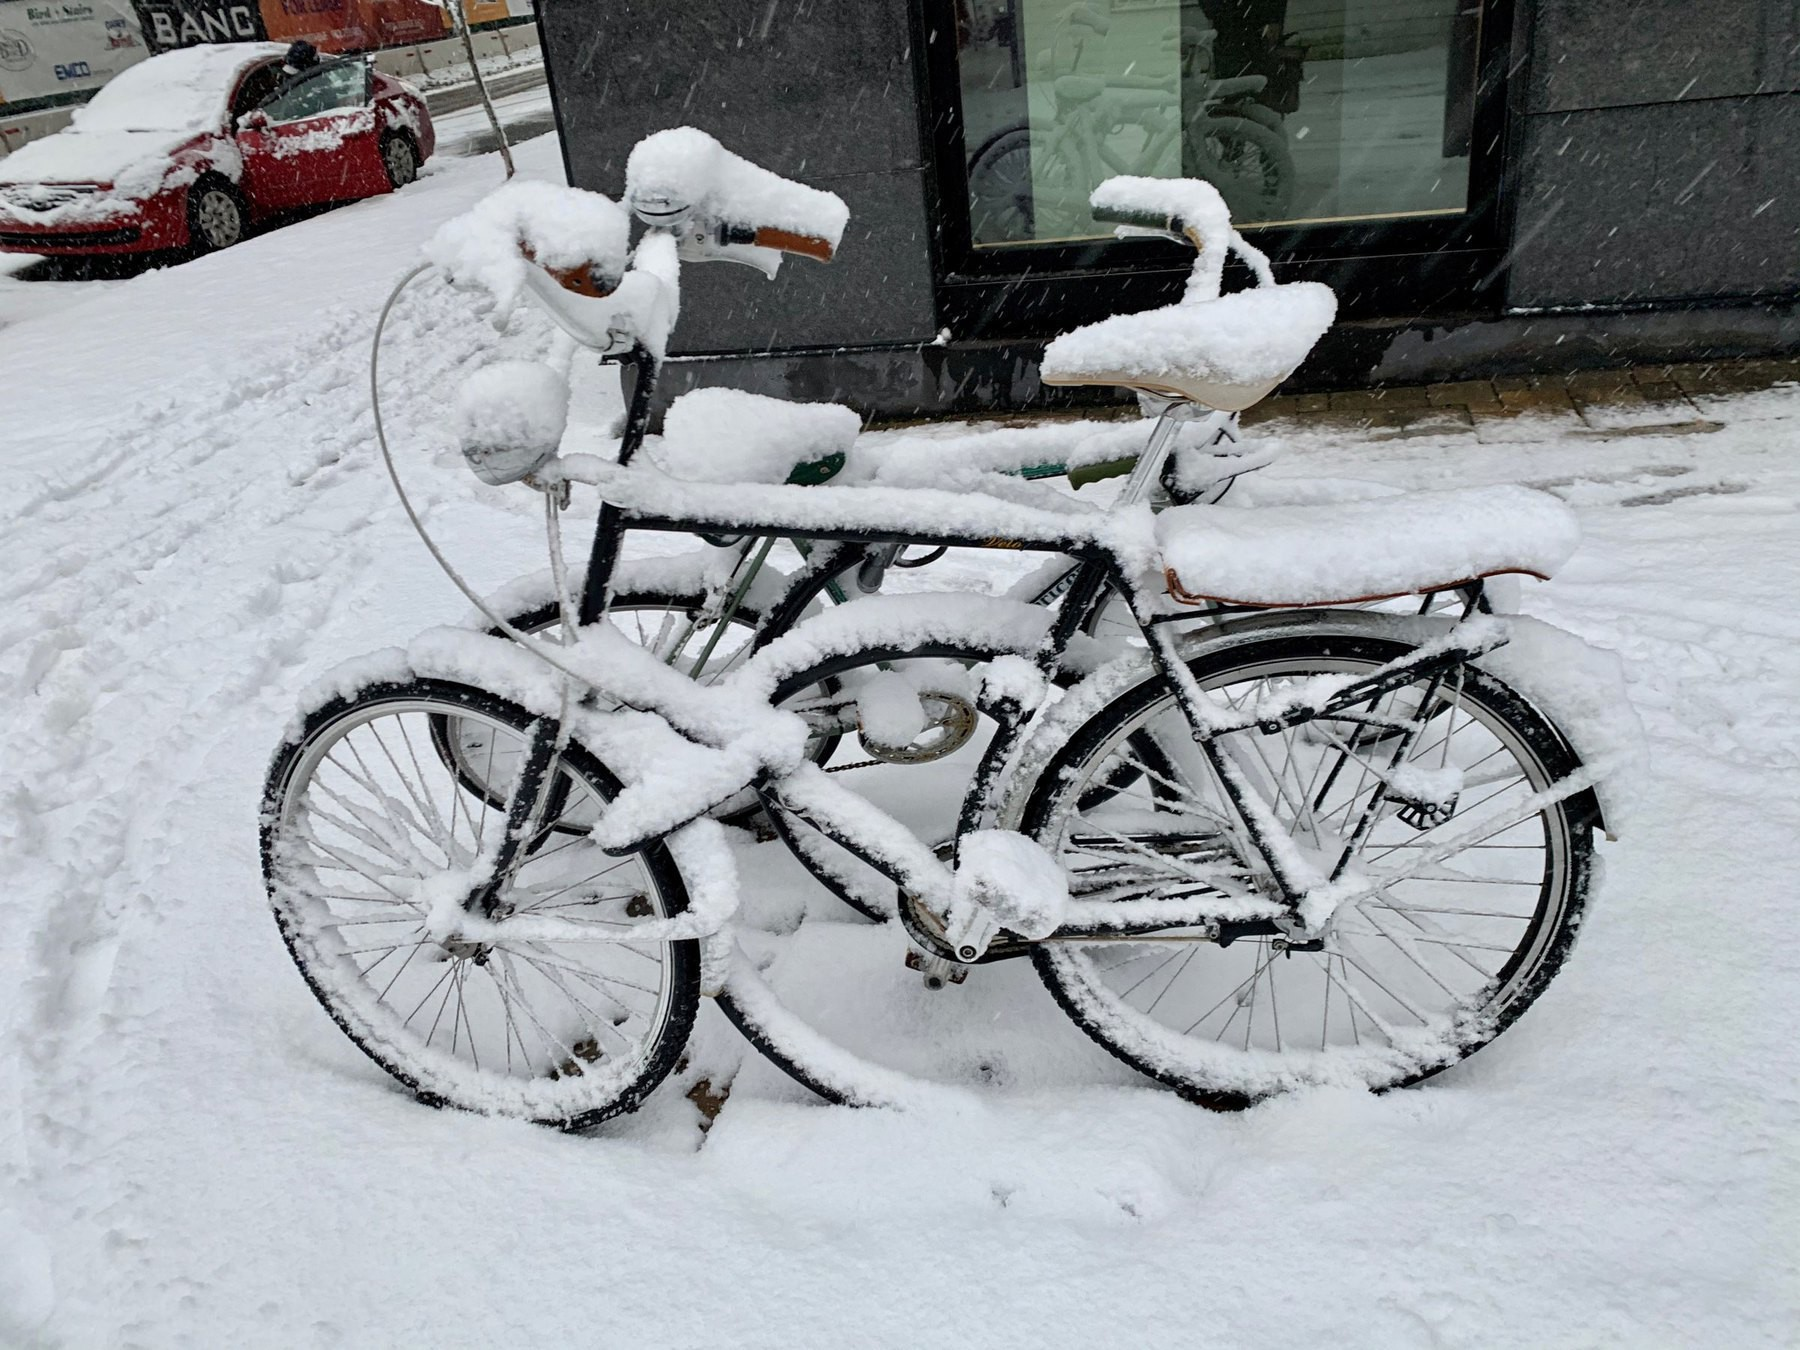 Snow-covered bicycles locked to a bike rack downtown